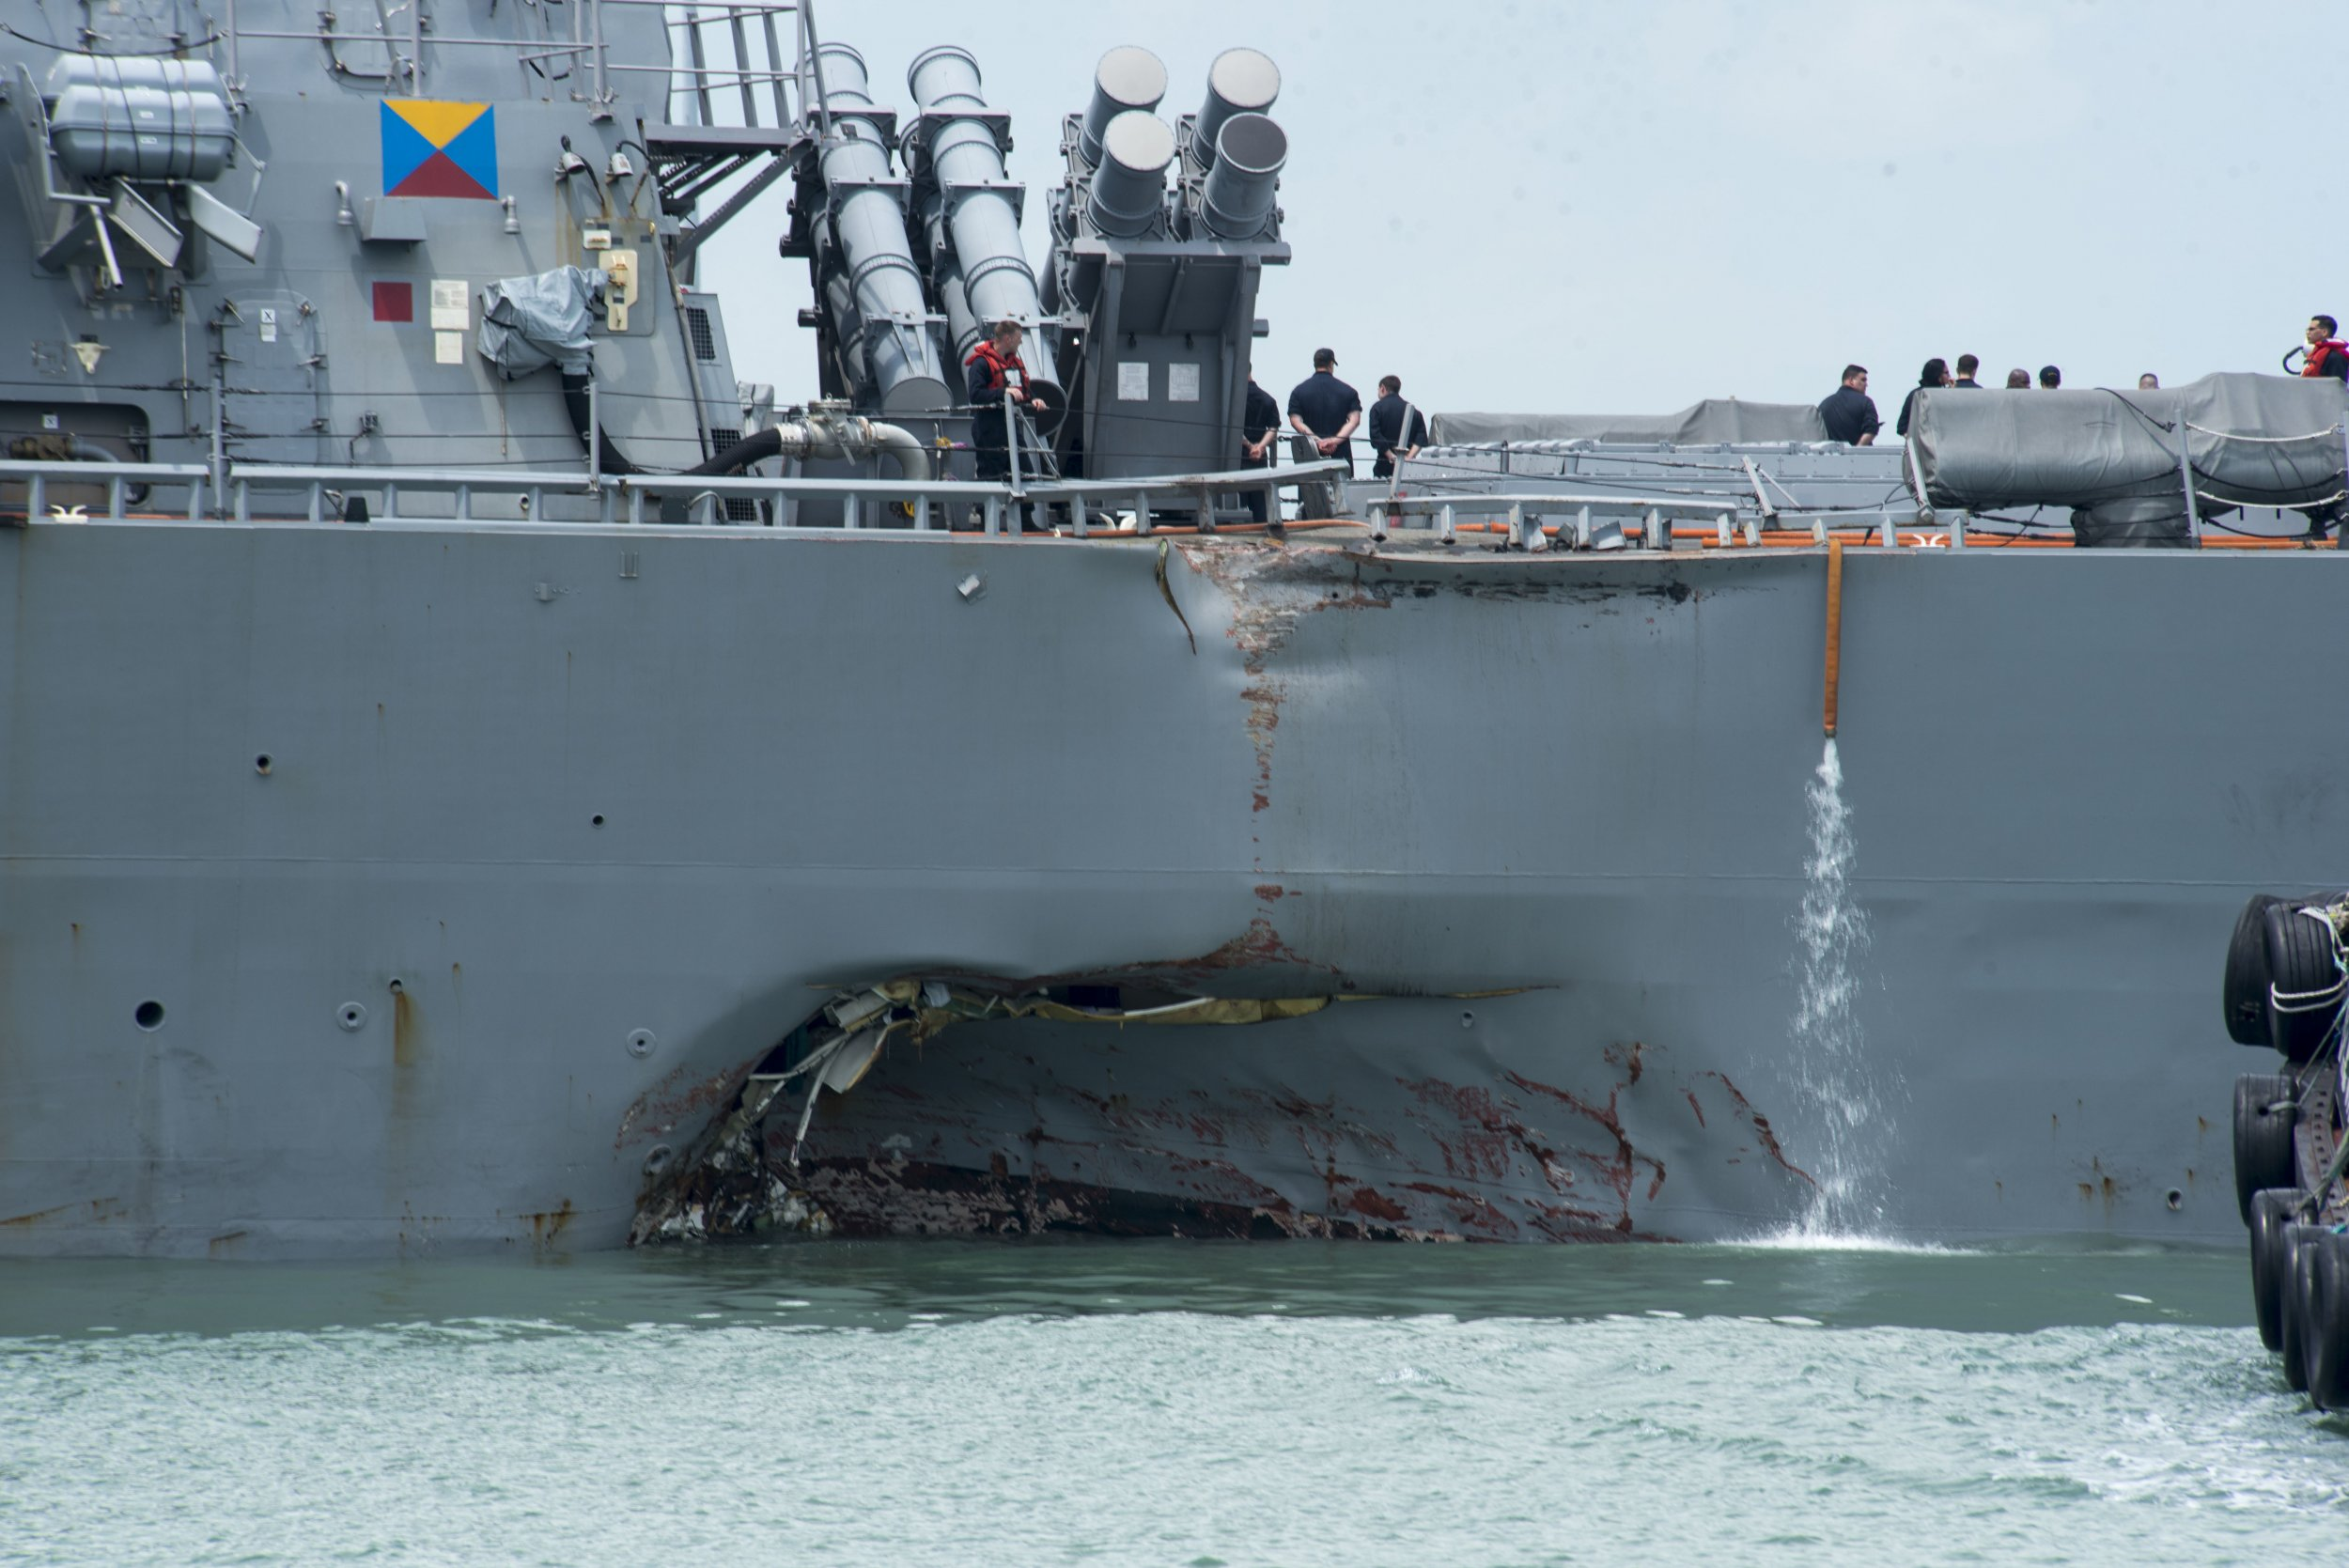 what is negligent homicide? u.s. navy commanders charged in